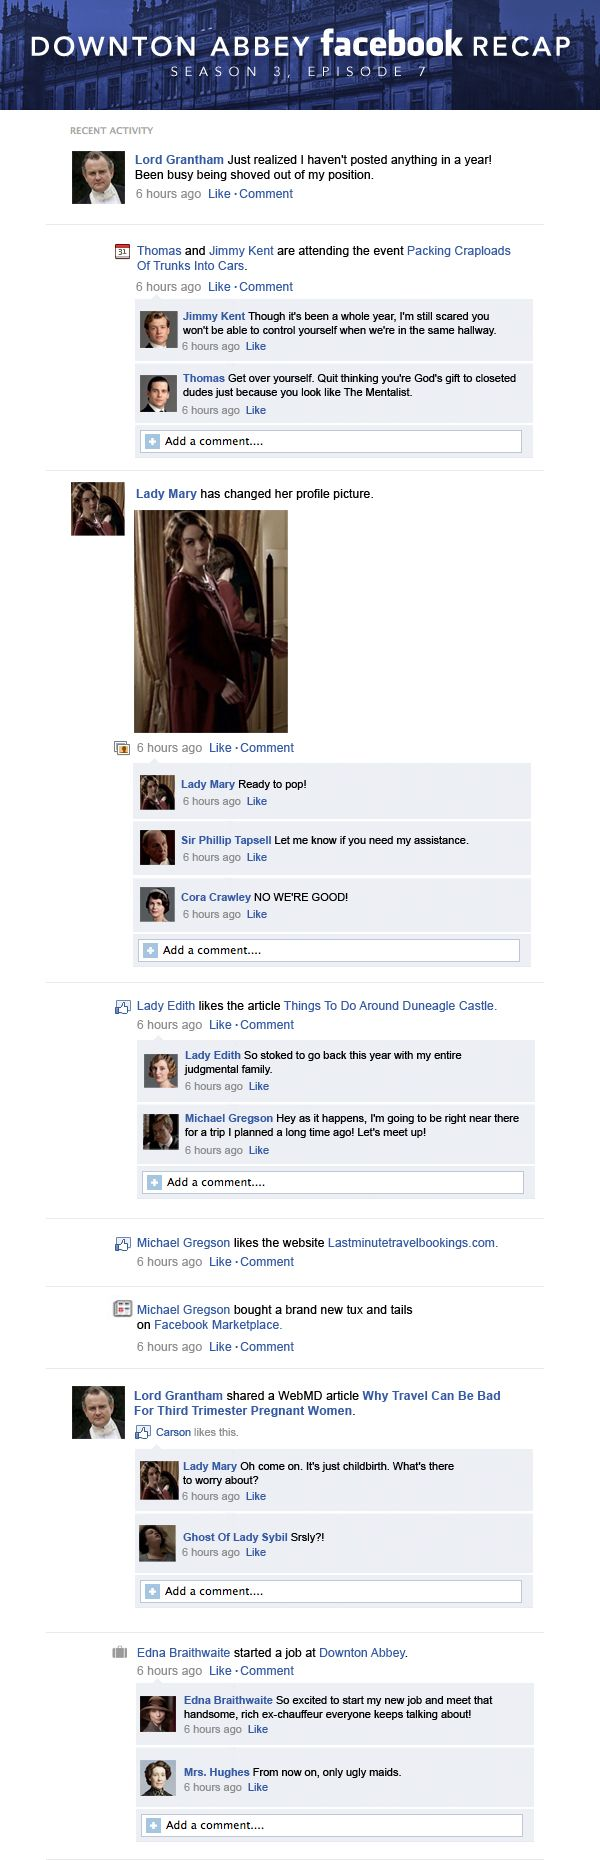 If Downton Abbey took place entirely on Facebook: Season 3, Episode 7. (click to see whole episode)